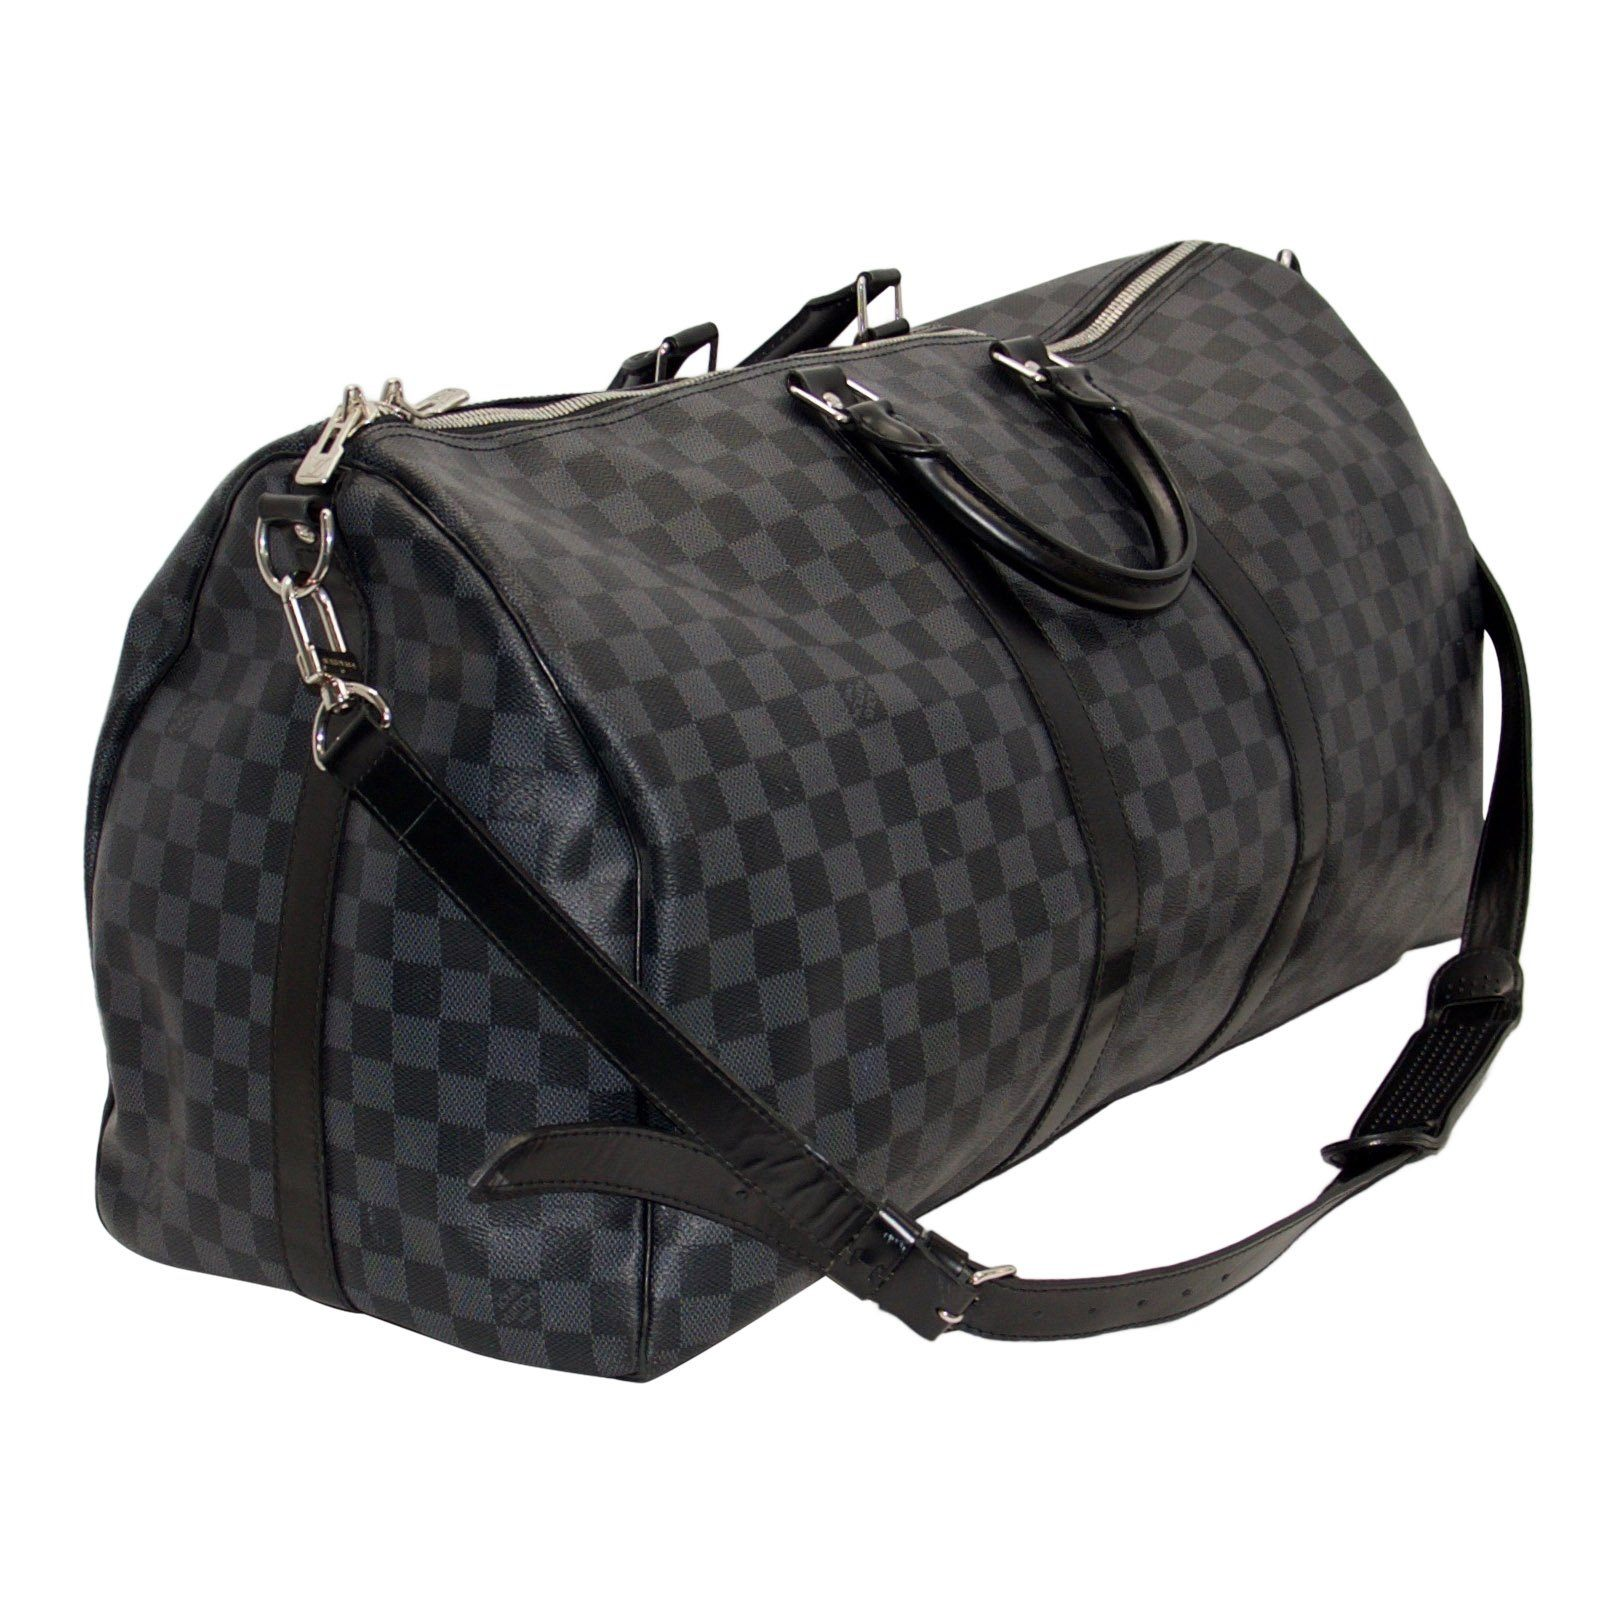 0a563d3d92f9 Louis Vuitton Damier Graphite Keepall Bandouliere 55 - Oliver Jewellery